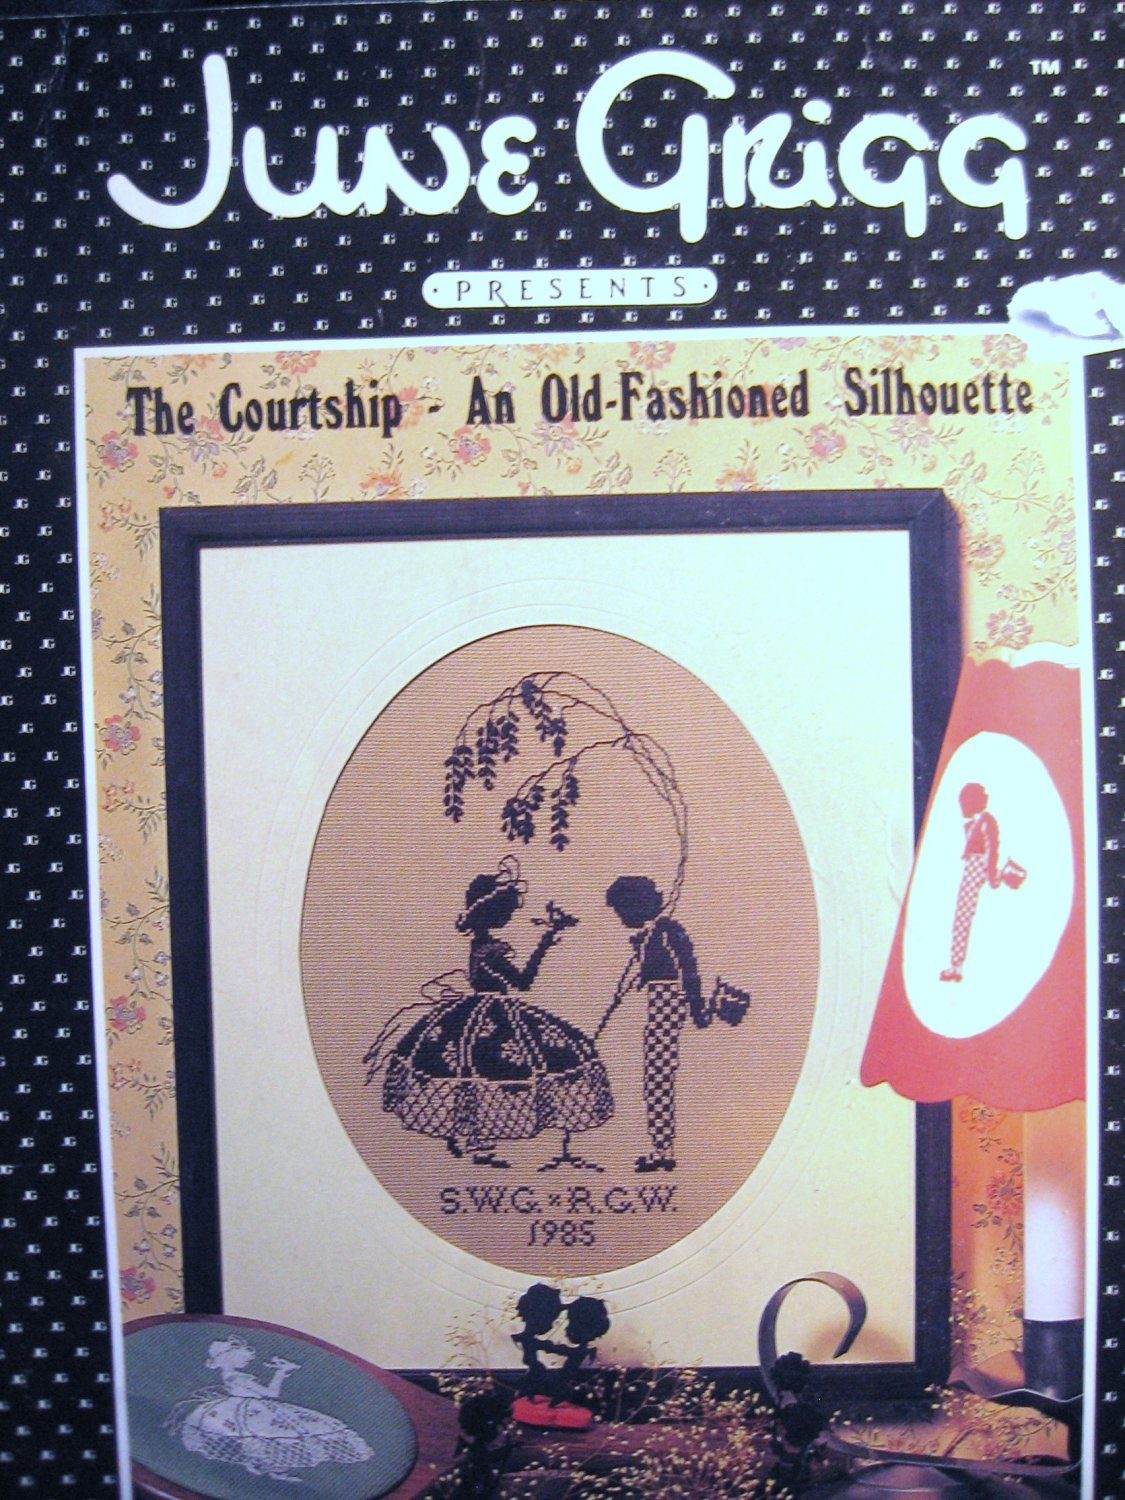 The Courtship An Old Fashioned Silhouette by June Grigg Cross Stitch Pattern